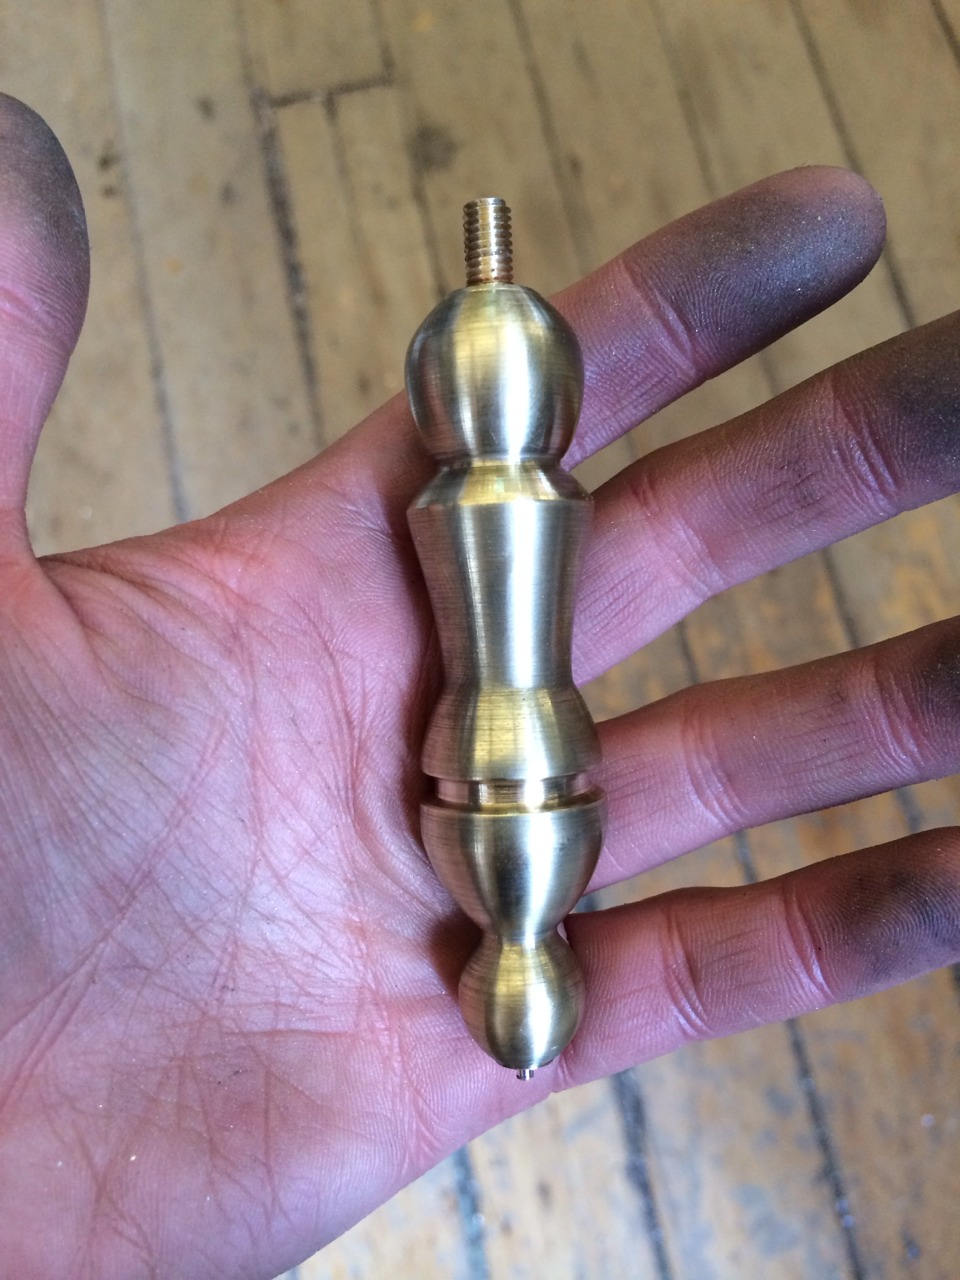 Second polished brass piece